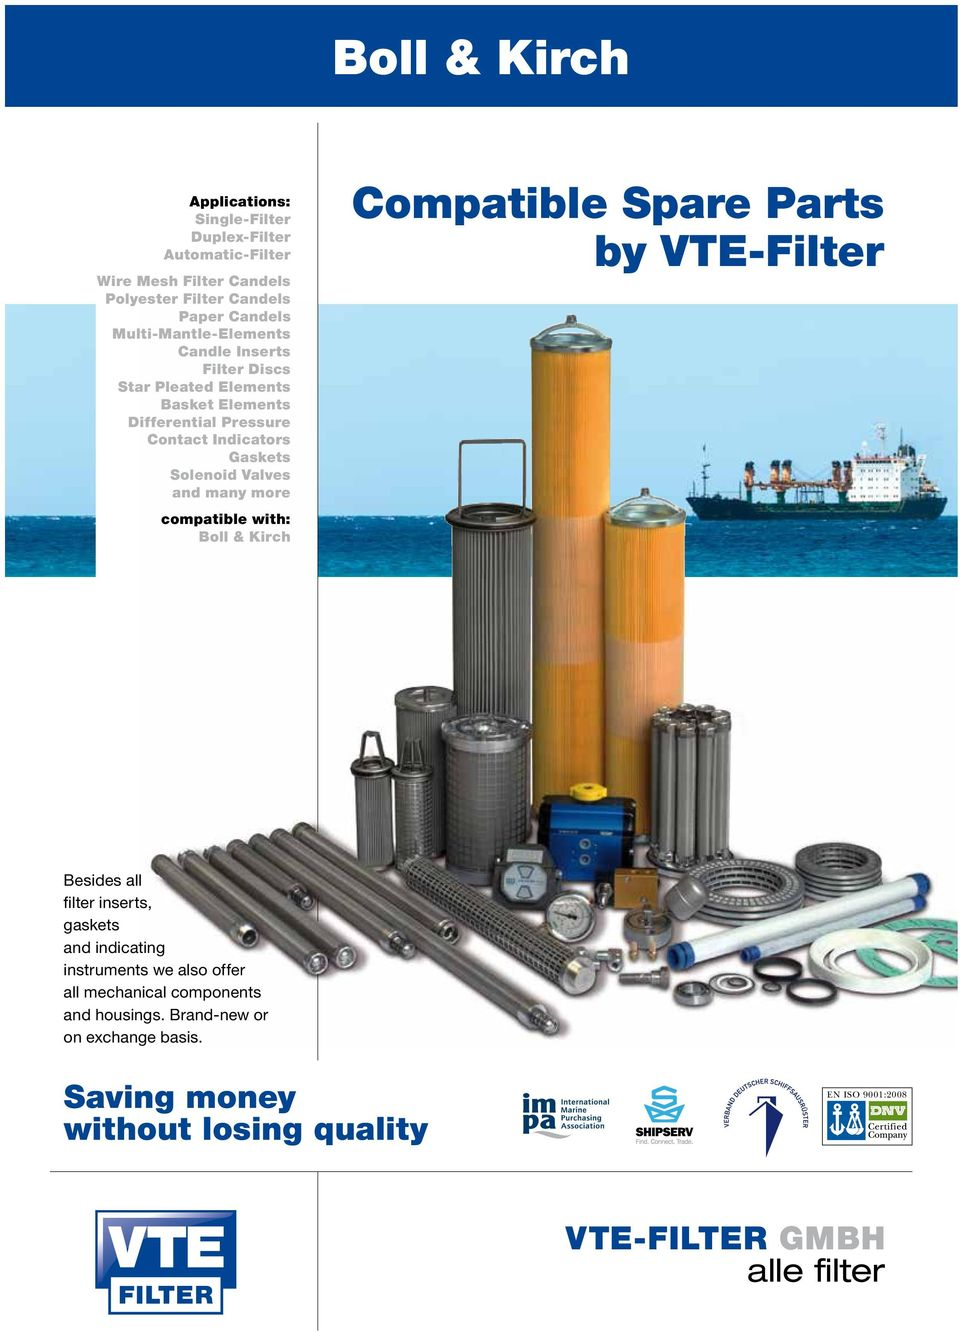 Compatible Spare Parts For Fueland Lube Oil Filter Pdf Peco Fuel Filters Contact Indicators Gaskets Solenoid Valves With Boll Kirch By Vte